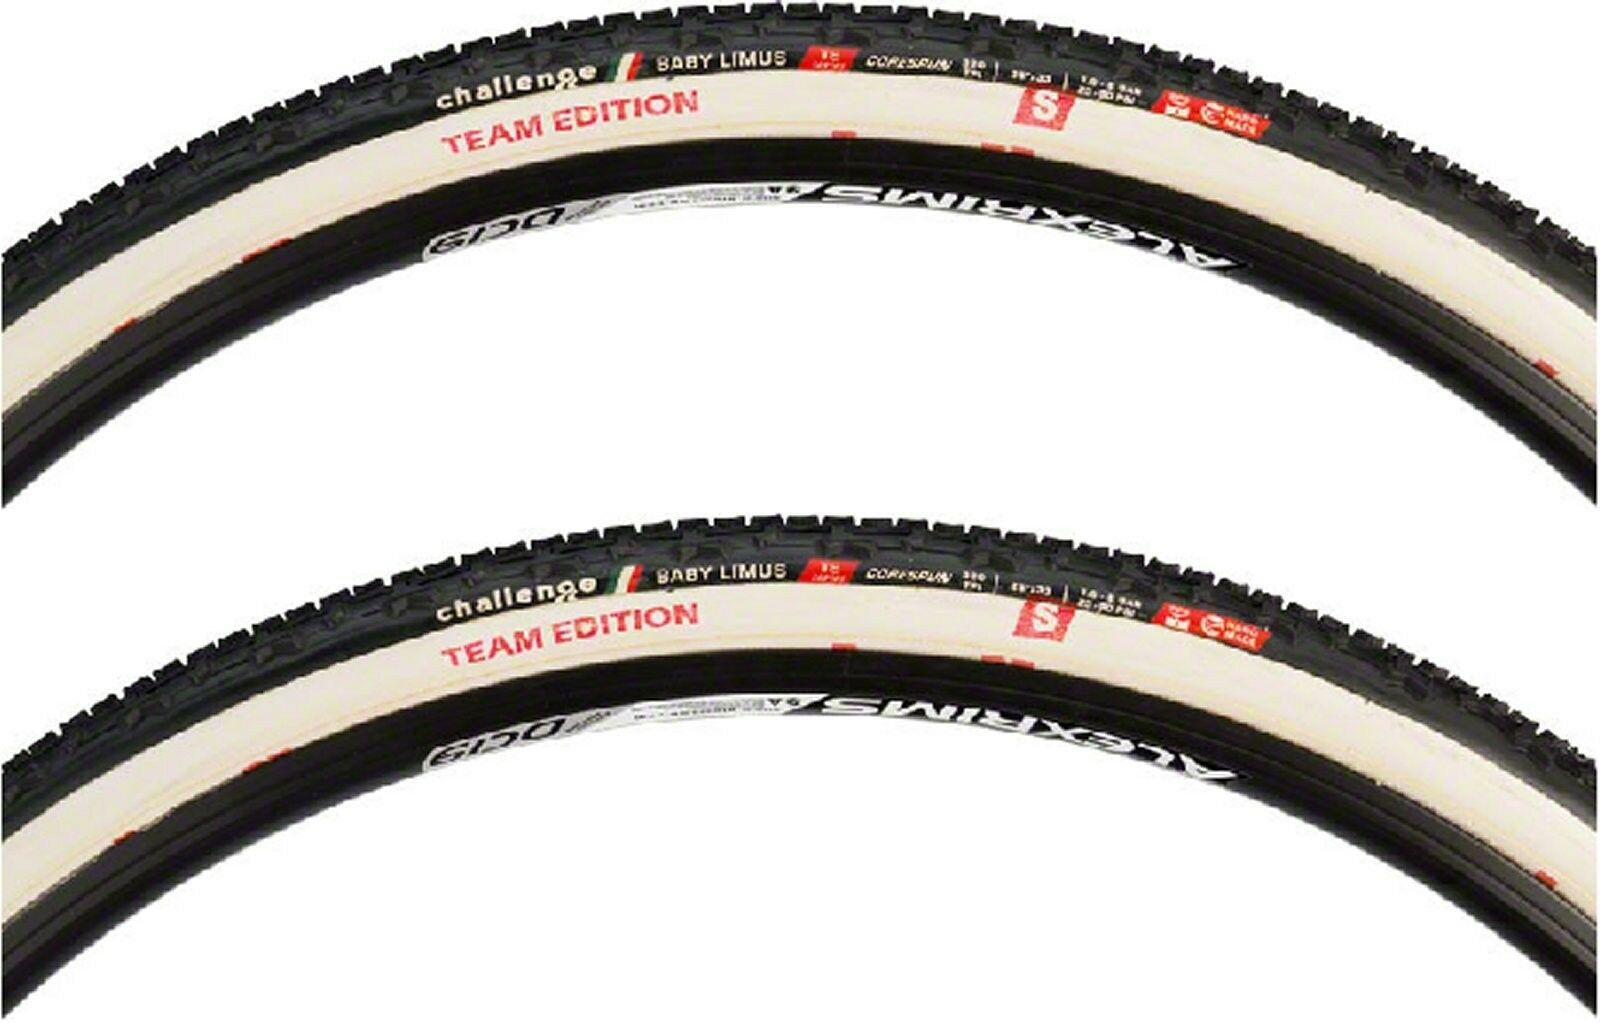 Challenge Baby Limus S Team Edition cyclocross tubular 700 x  33   2 tires  sales online